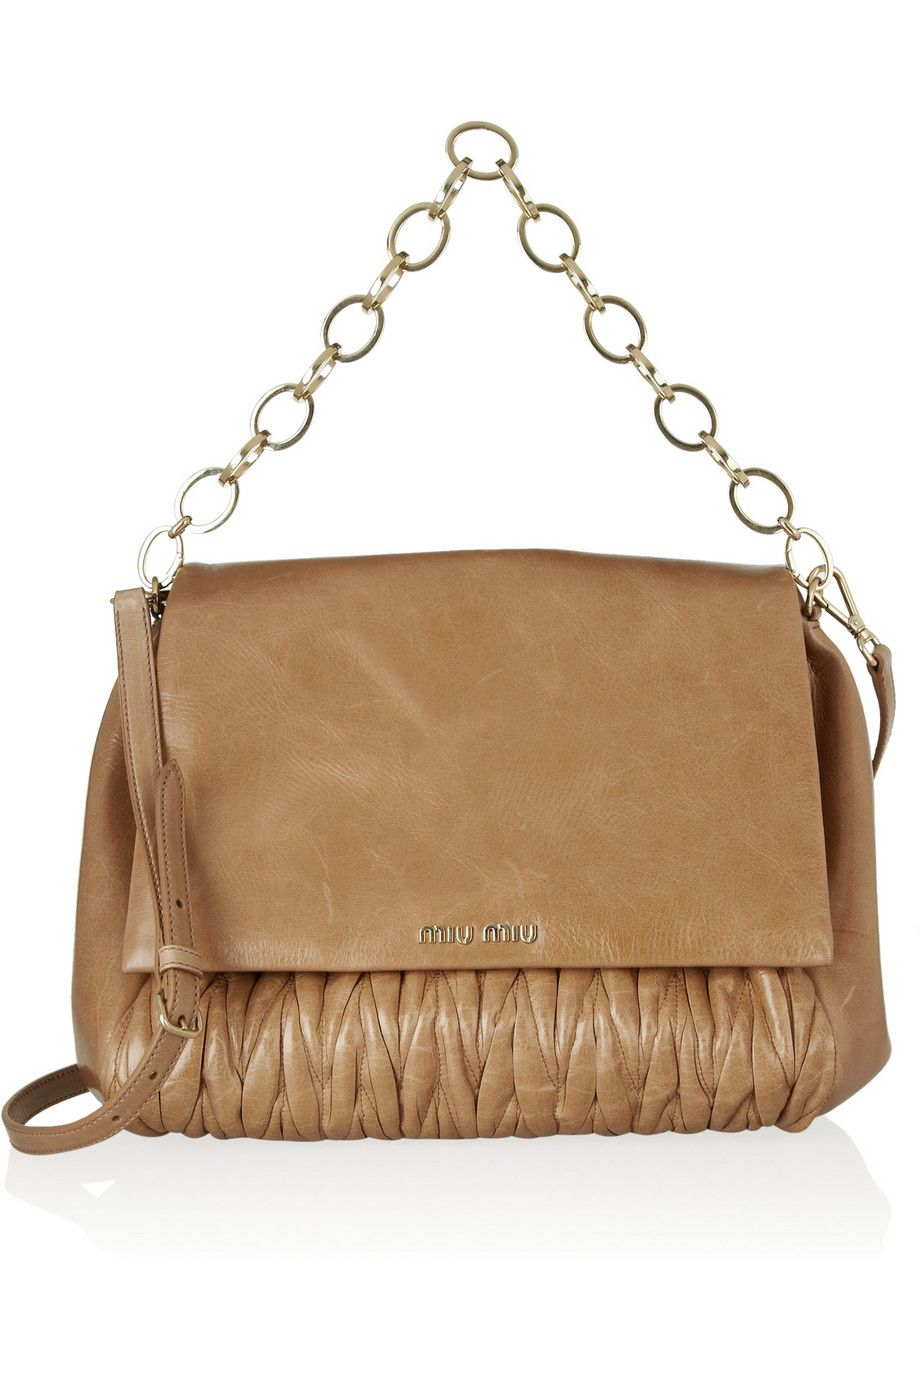 Miu Miu Matelassé leather shoulder bag   My Style   Pinterest   Miu ... ae759114ea